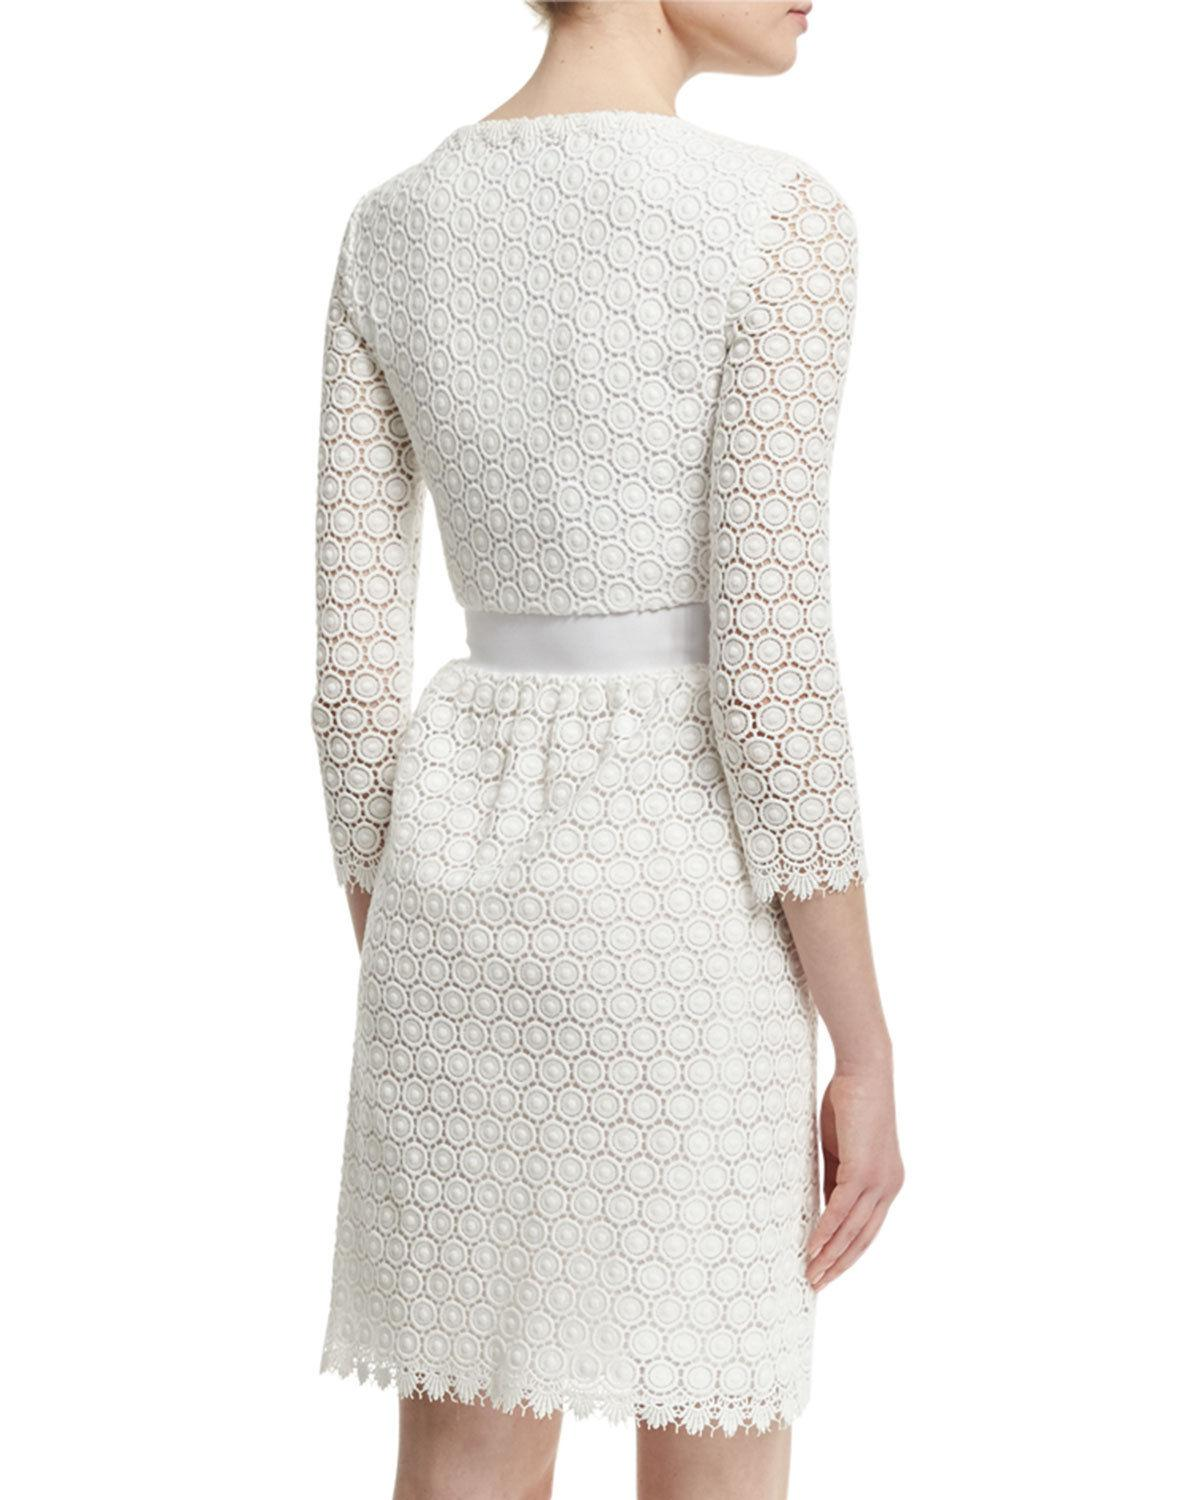 $568 Diane Von Furstenberg Dvf Nolly Laces Honeycomb A-Line Ivory Dress 6 - S